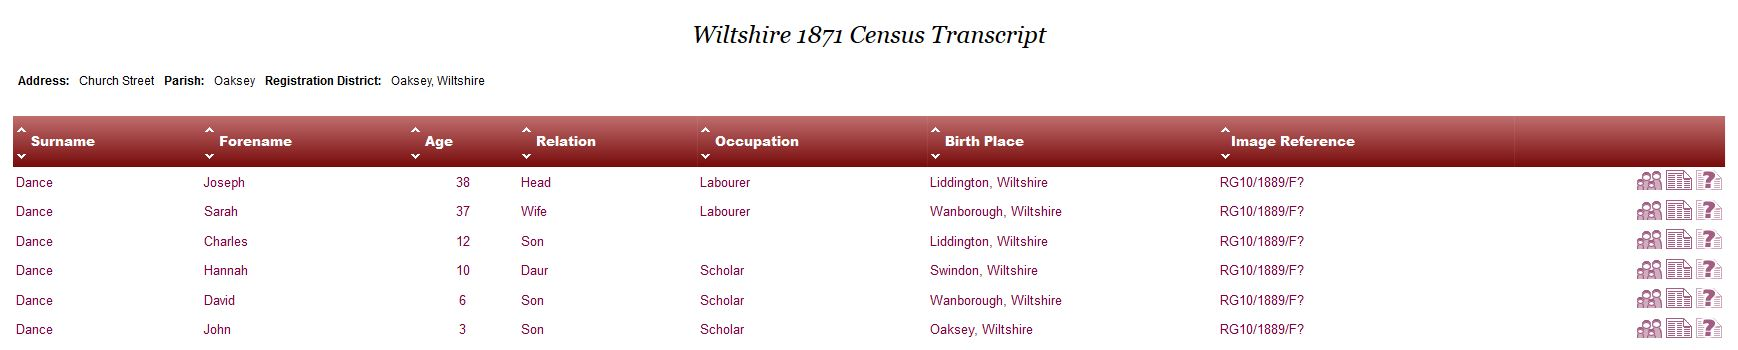 1871 Census of England and Wales, Wiltshire - Joseph and Sarah Dance and Family